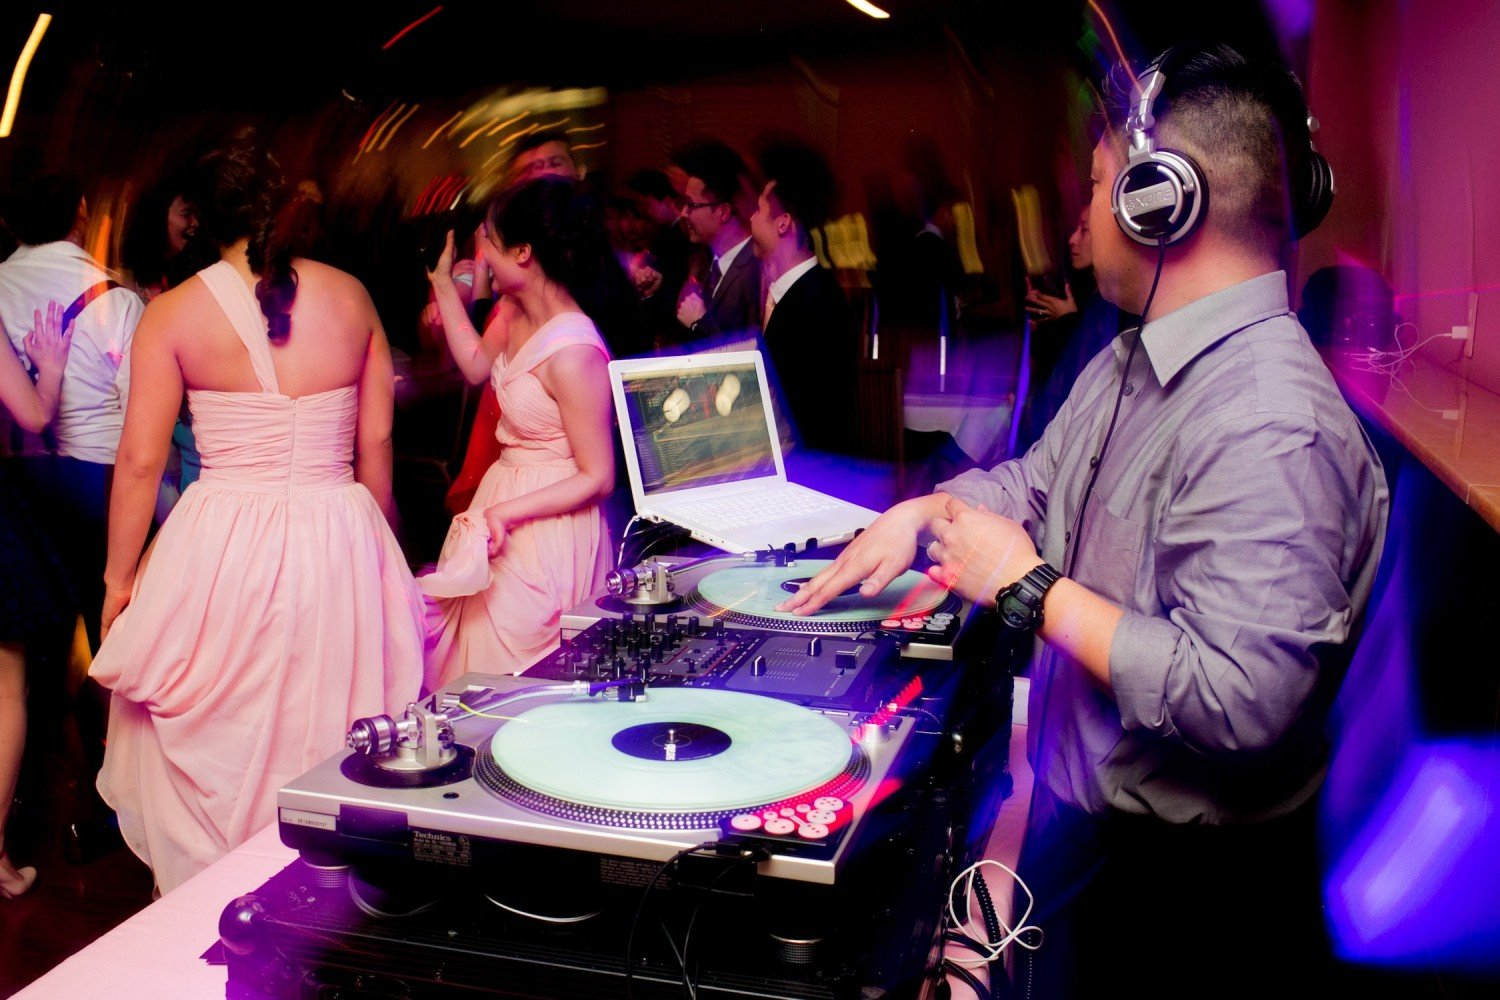 Raleigh durham wedding dj services vox dj company for 1234 lets on the dance floor